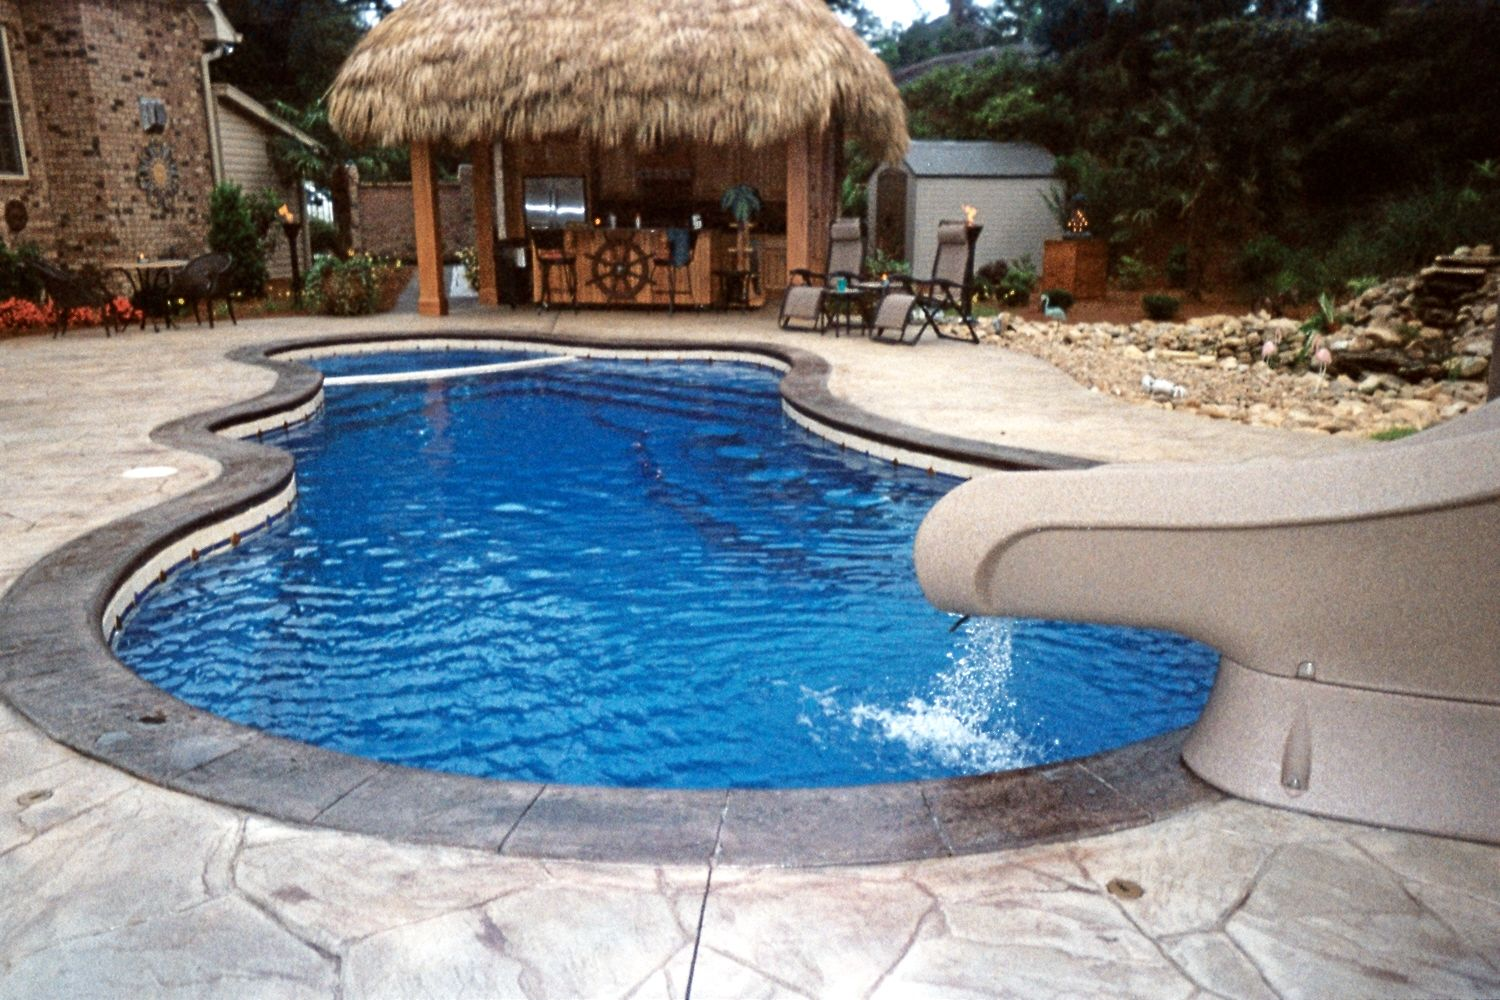 Fiberglass Pool Ideas fiberglass swimming pool with attached spa and cool decking Find This Pin And More On Home Design Ideas With Pictures Swiming Pools Whitsunday Fiberglass Swimming Pool